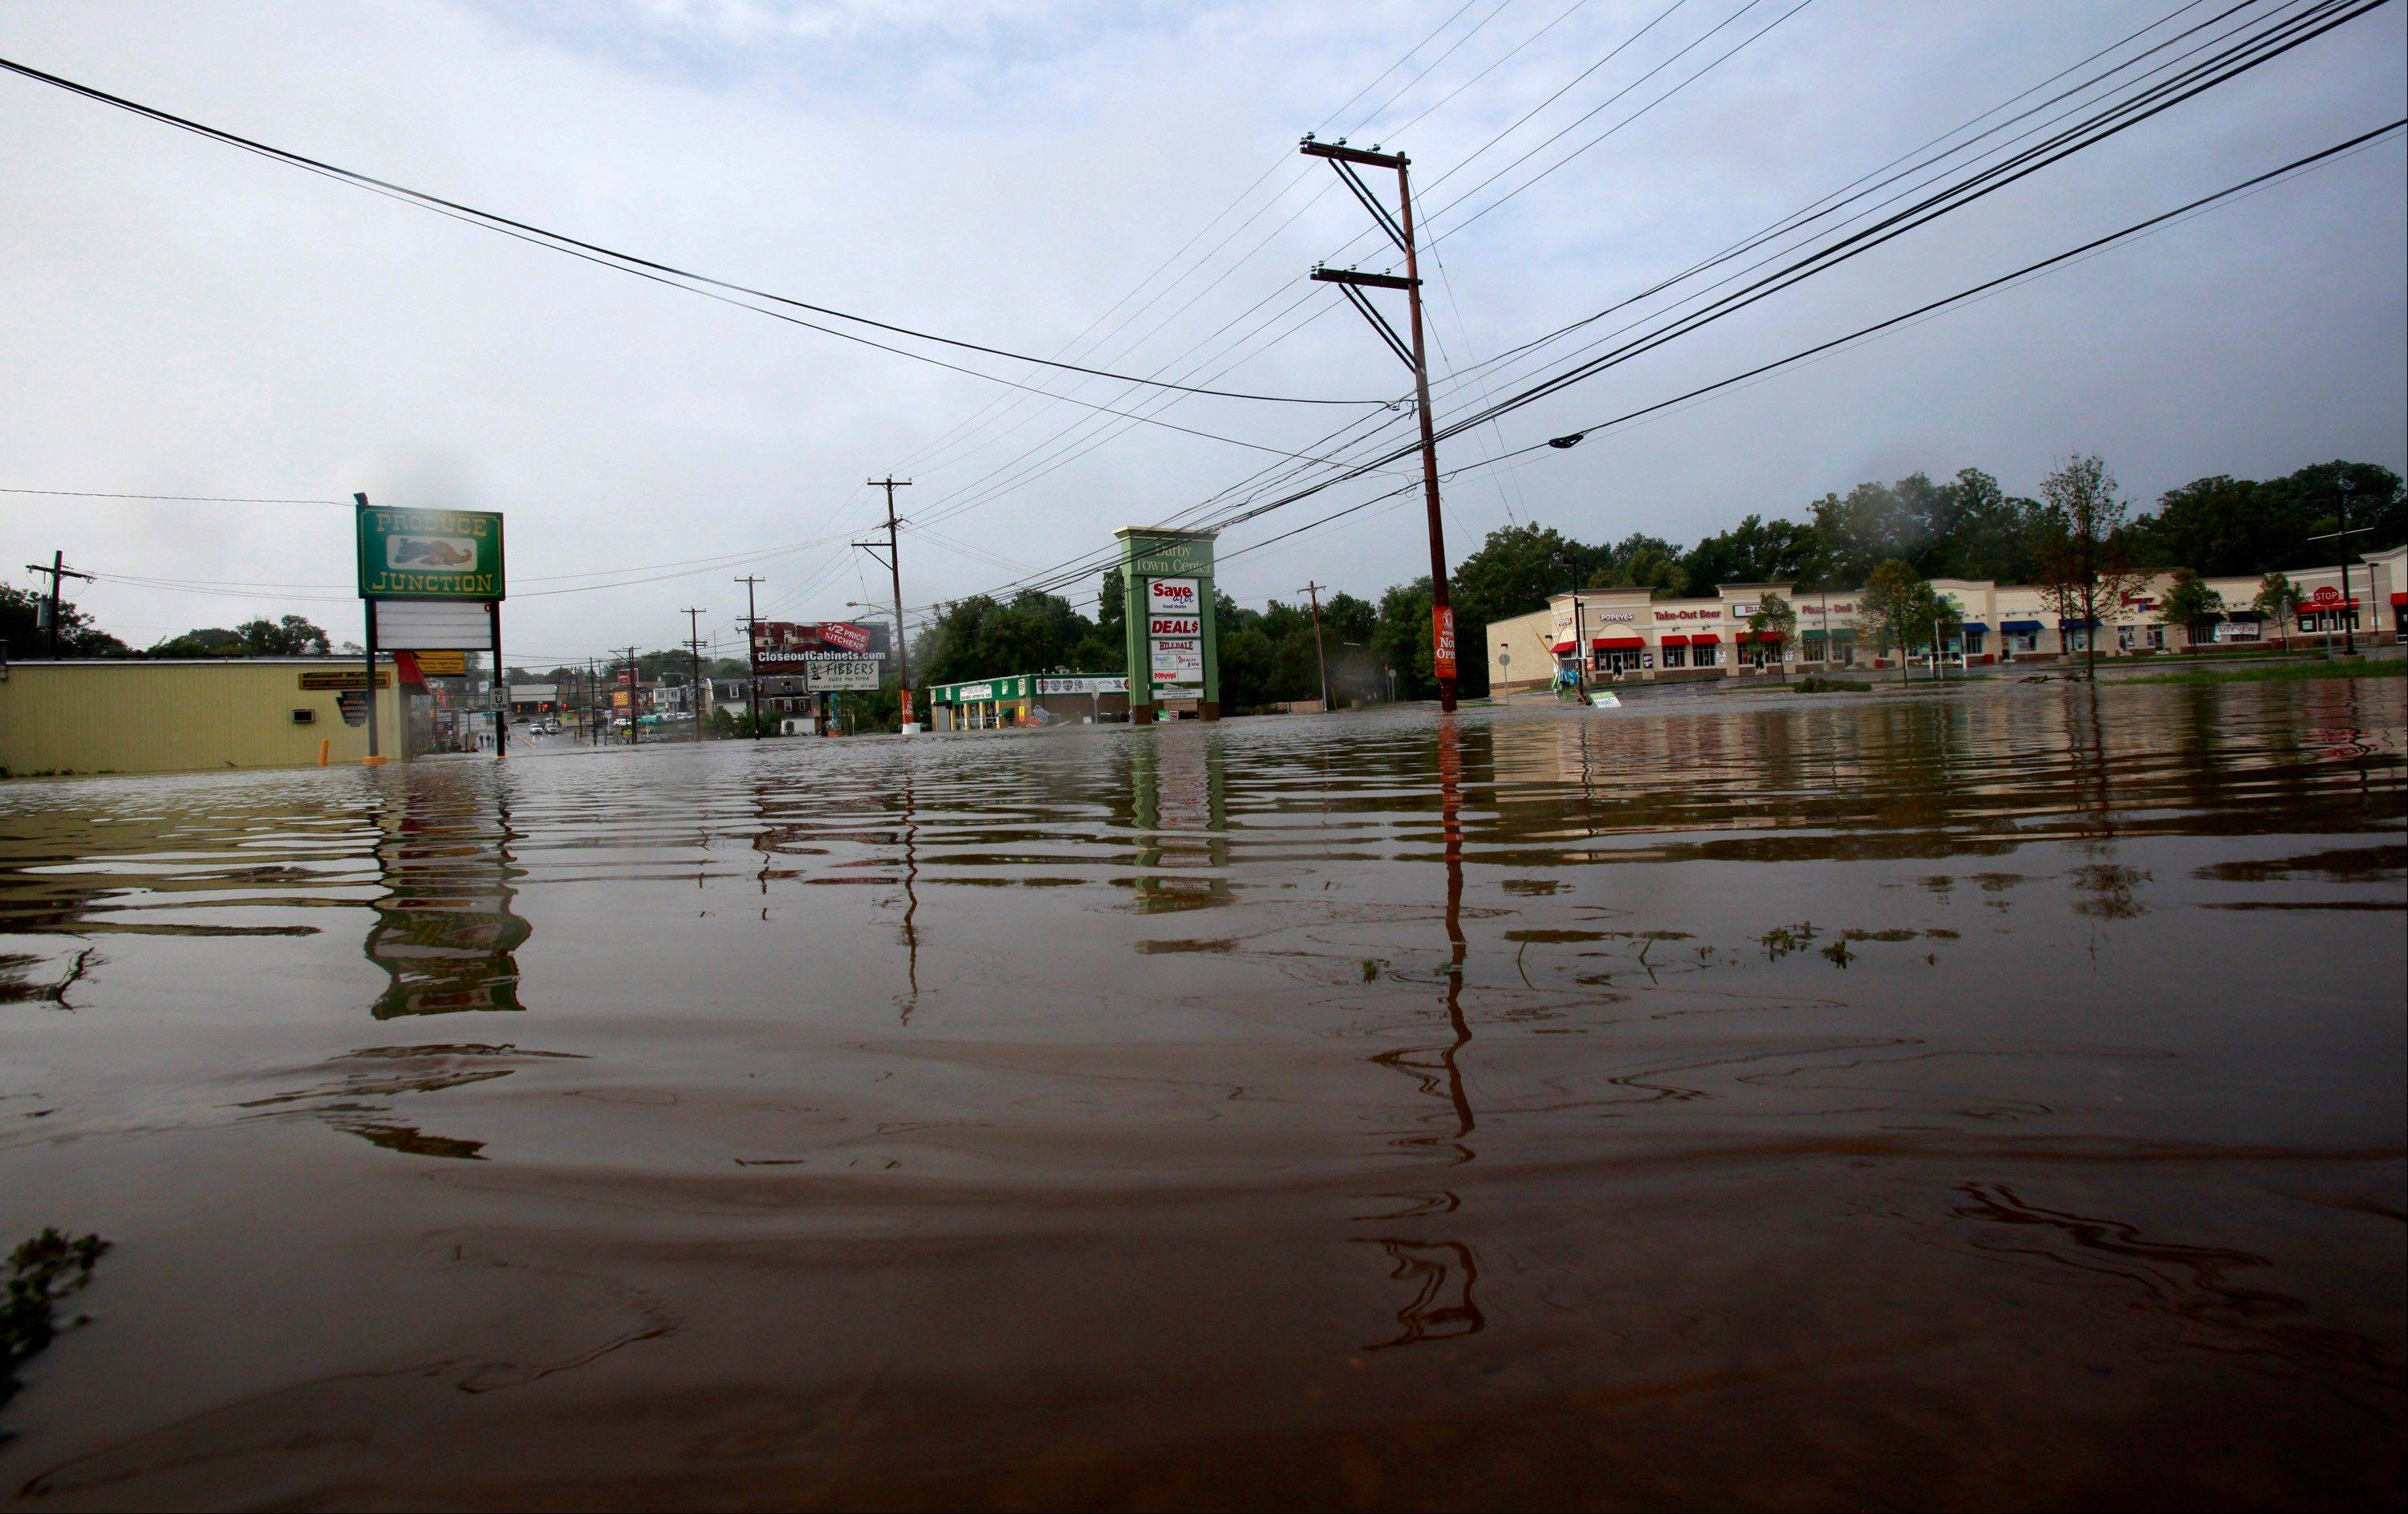 Business are flooded along on McDade Blvd. in Darby, Pa near Philadelphia Sunday Aug. 28, 2011. Irene slammed into Pennsylvania overnight, bringing rain and gusty winds that generated widespread flooding, toppled trees, and power outages.